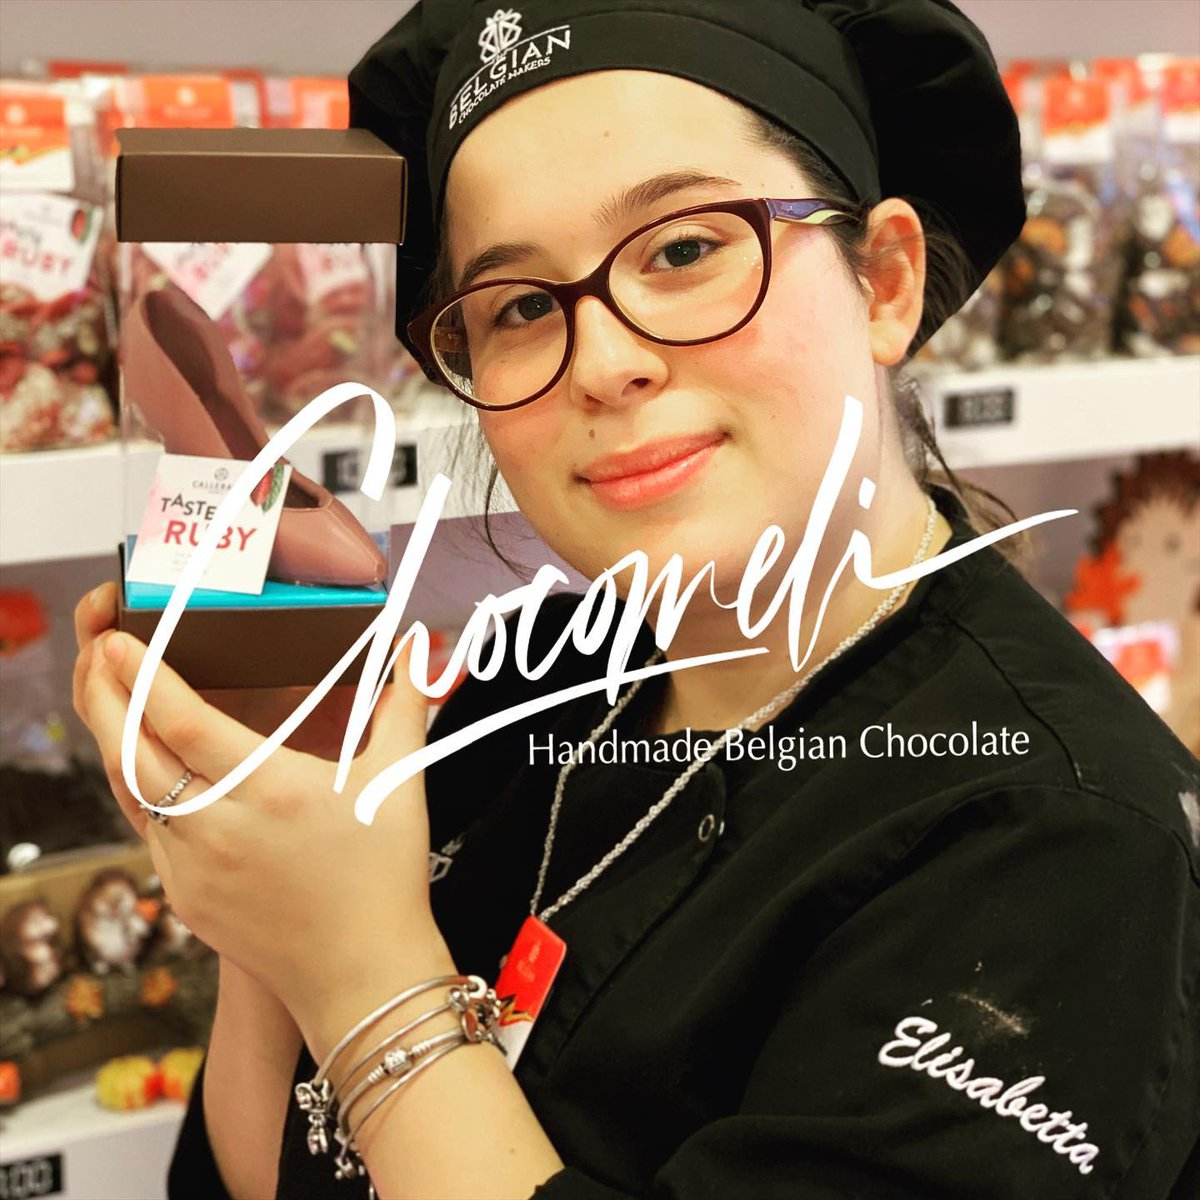 Real handmade chocolate, true Belgian chocolate, from bean to bars. Real people, true passion! Save the earth, it's the only planet with chocolate! Need to know more? Visit us and speak to us! #visitbrussels #cocoa #thebelgianchocolatemakers #bxl #brussels #bruxelles #chocolate https://t.co/8RKFtKskOy